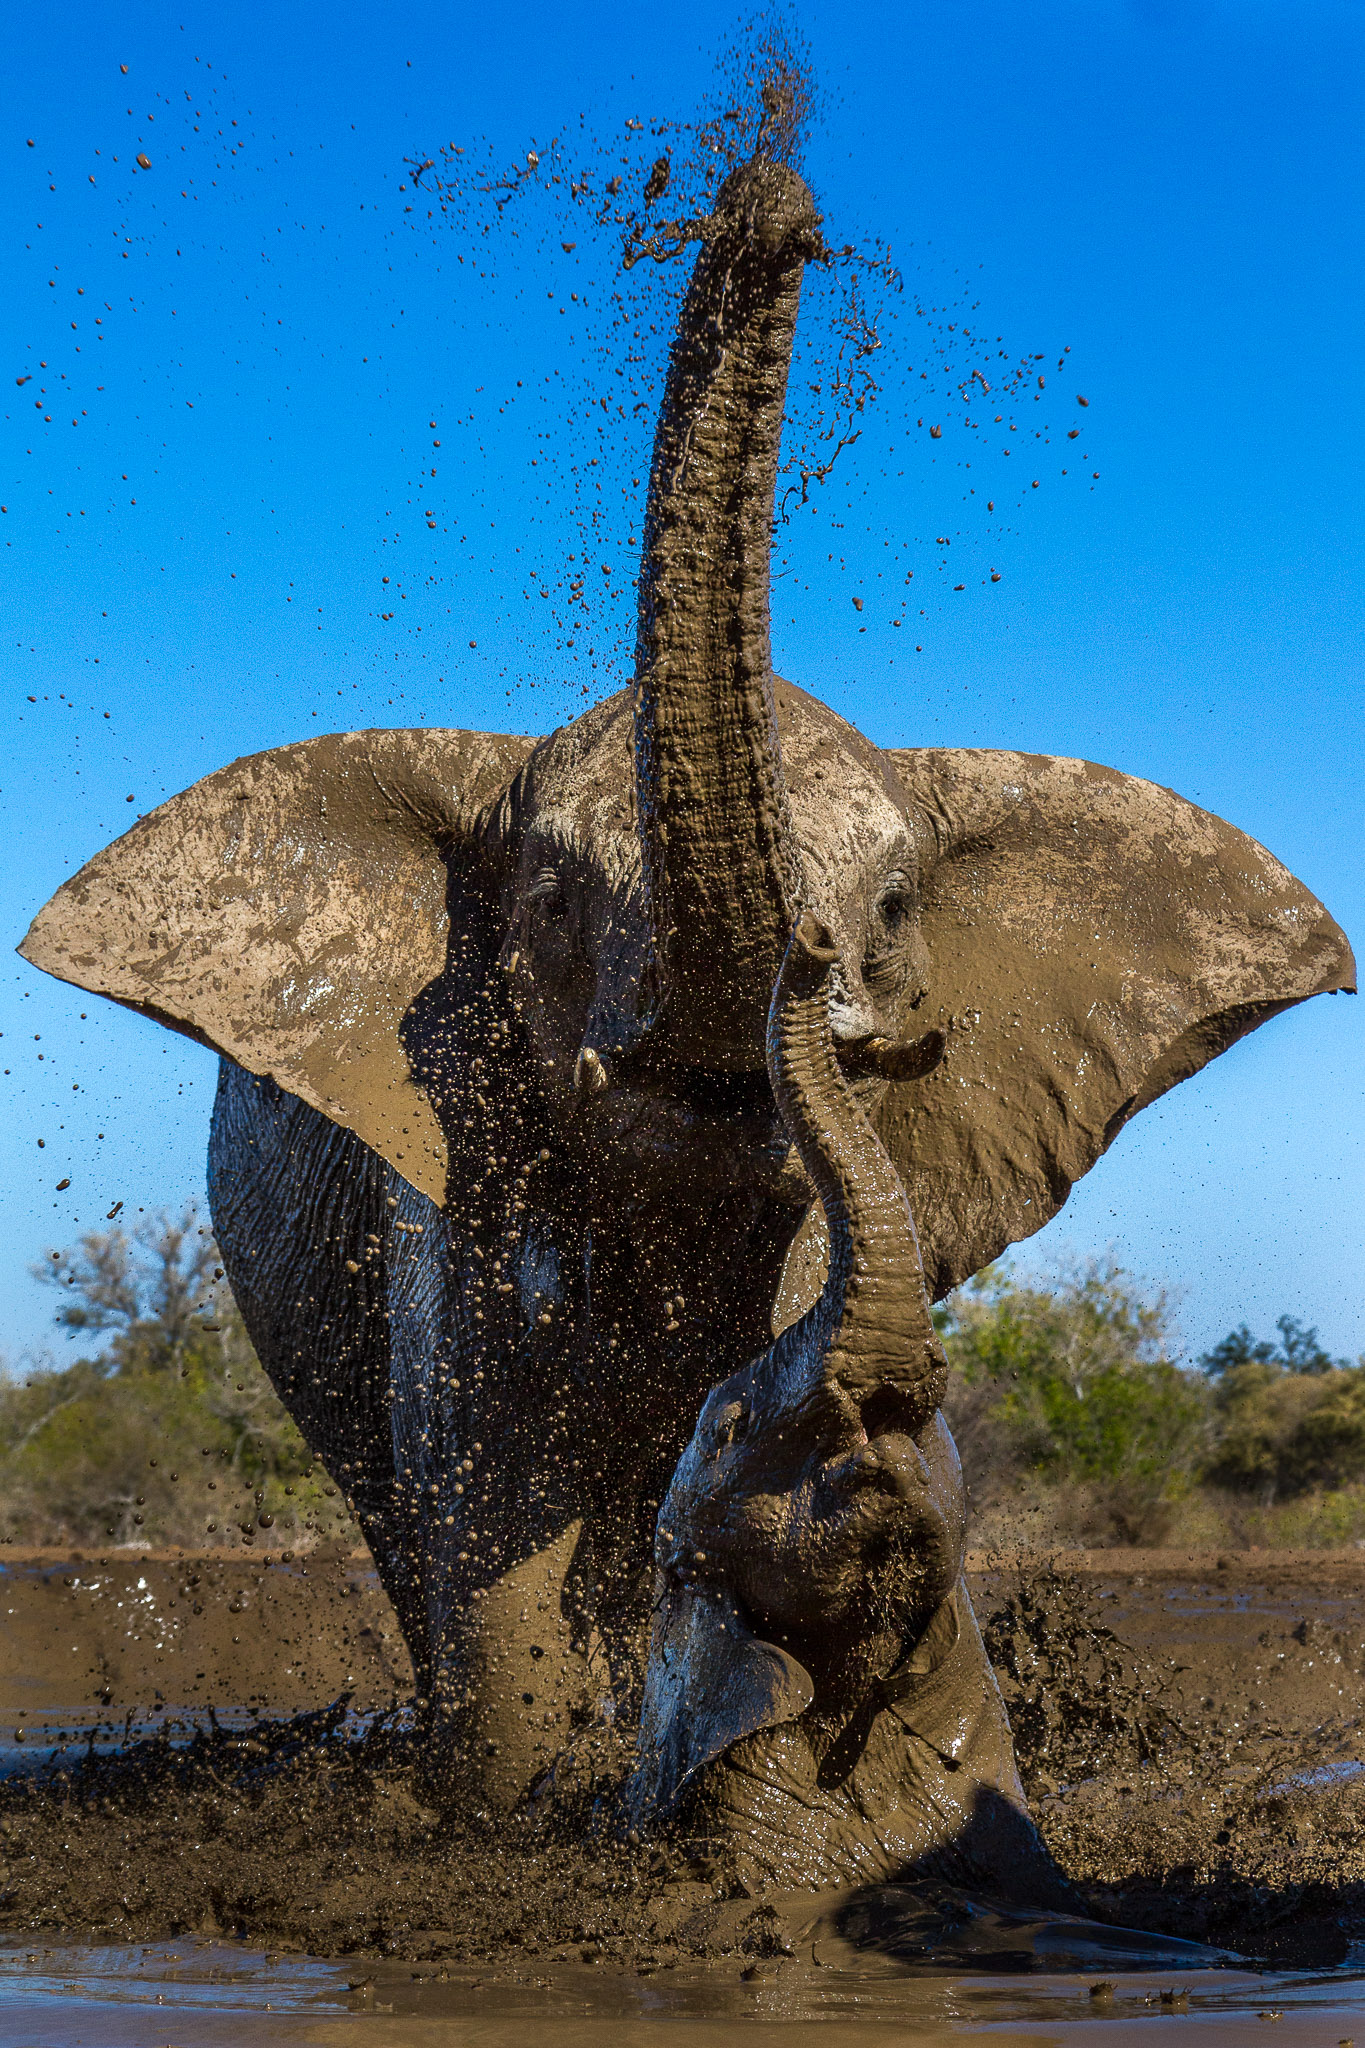 Elephant calf and mother splashing in mud